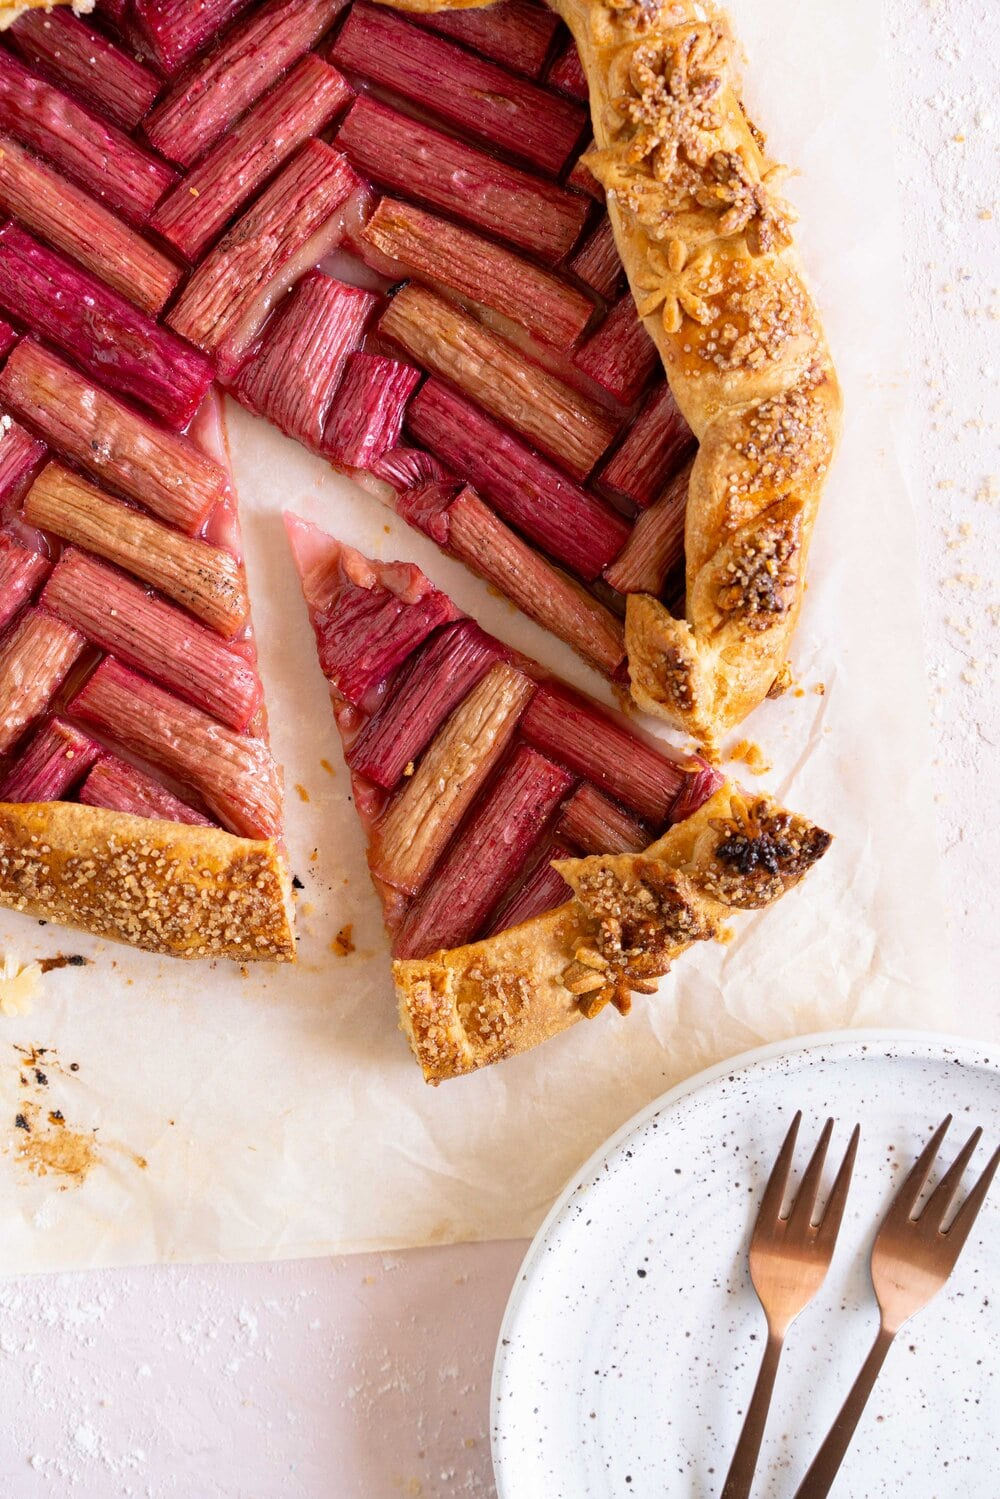 Rhubarb galette with a cornmeal crust. This easy rhubarb galette has a toasty cornmeal crust and a beautiful herringbone pattern. This galette is an easy spring dessert and is the perfect way to bake with rhubarb.